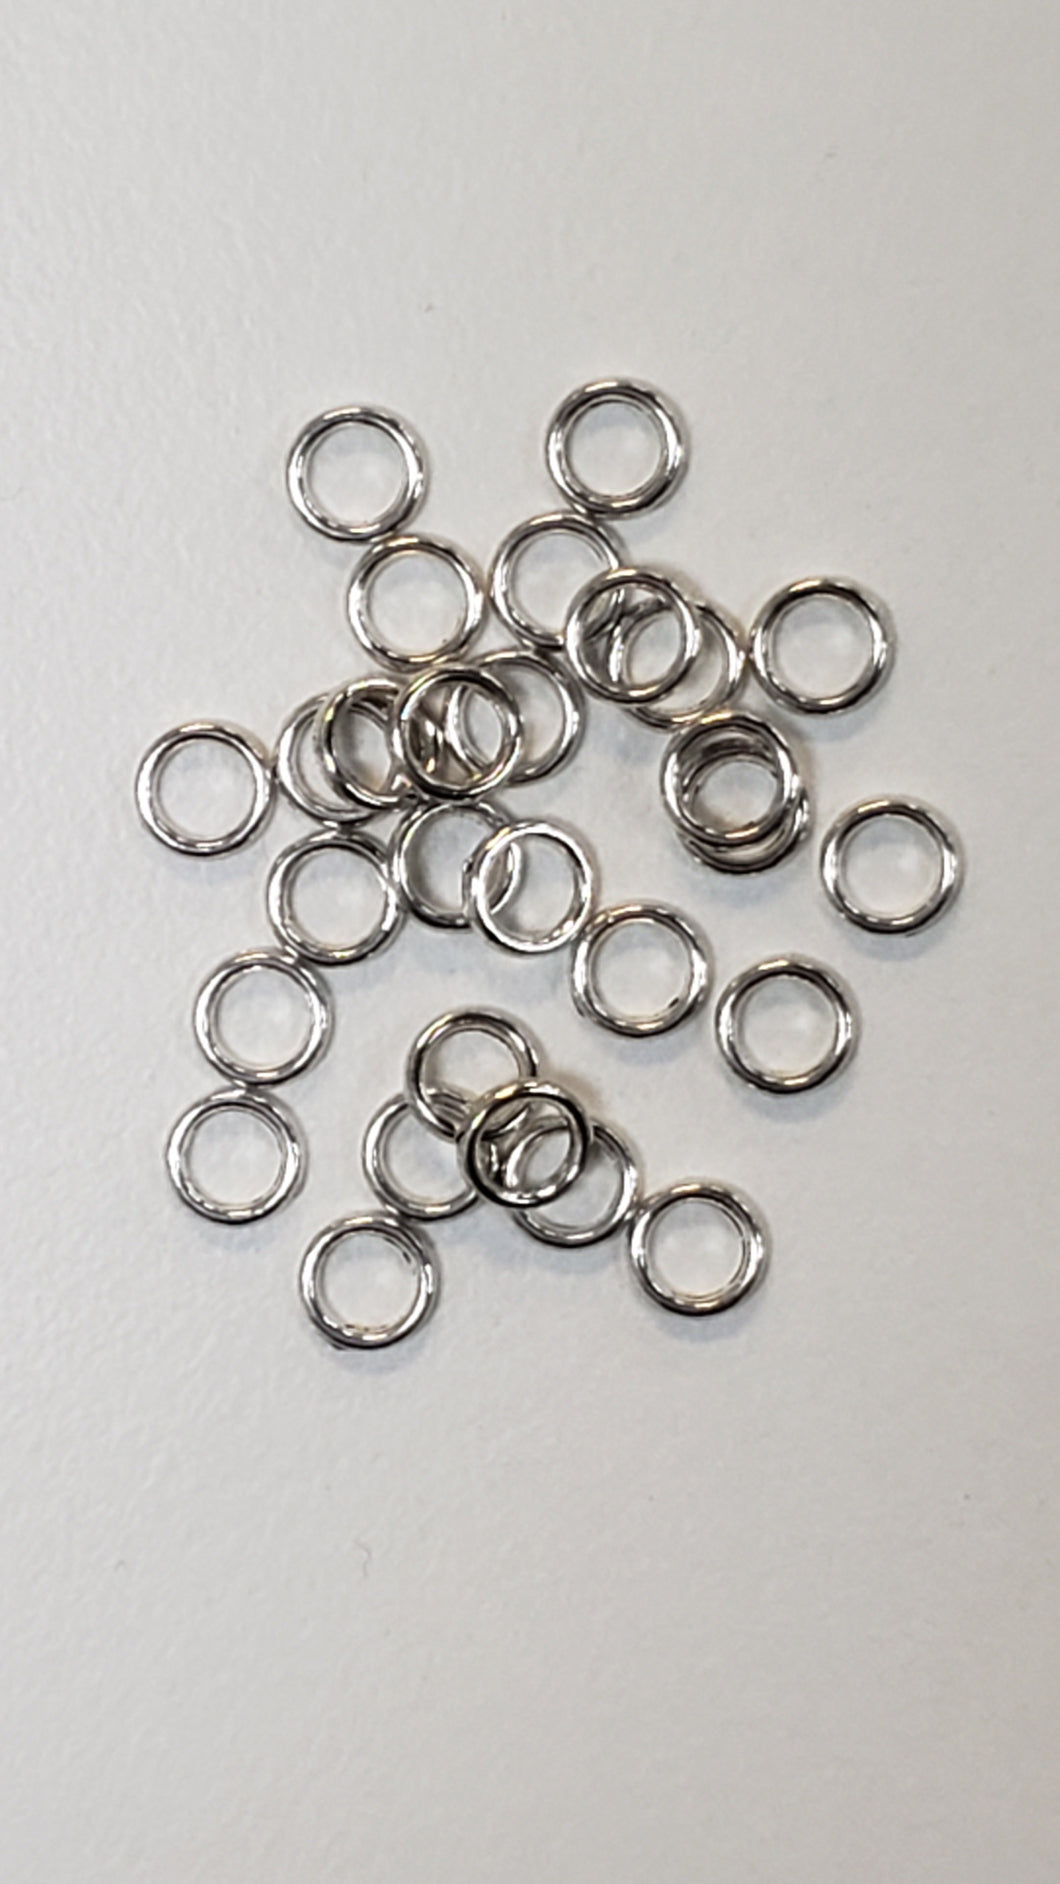 Pewter Silver Rings 6mm.